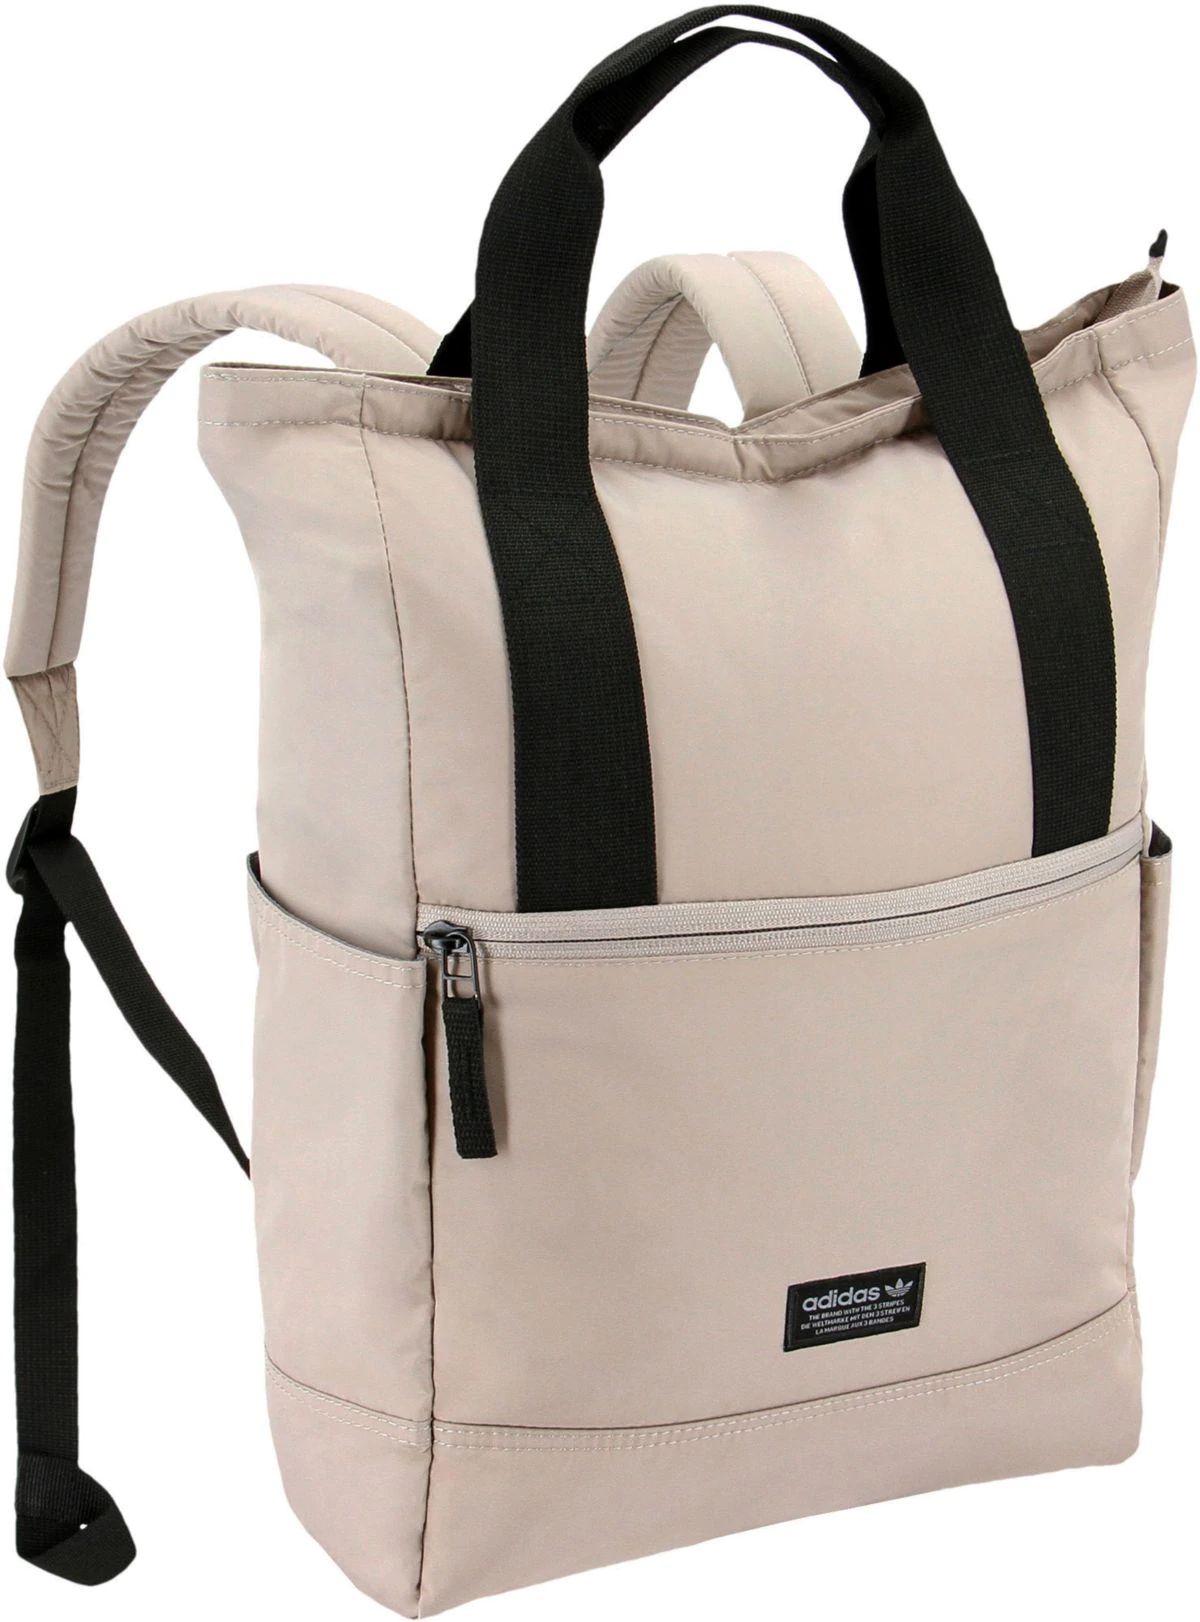 97b38ed9b63c Best Gym Bags For Women - Fitness Totes